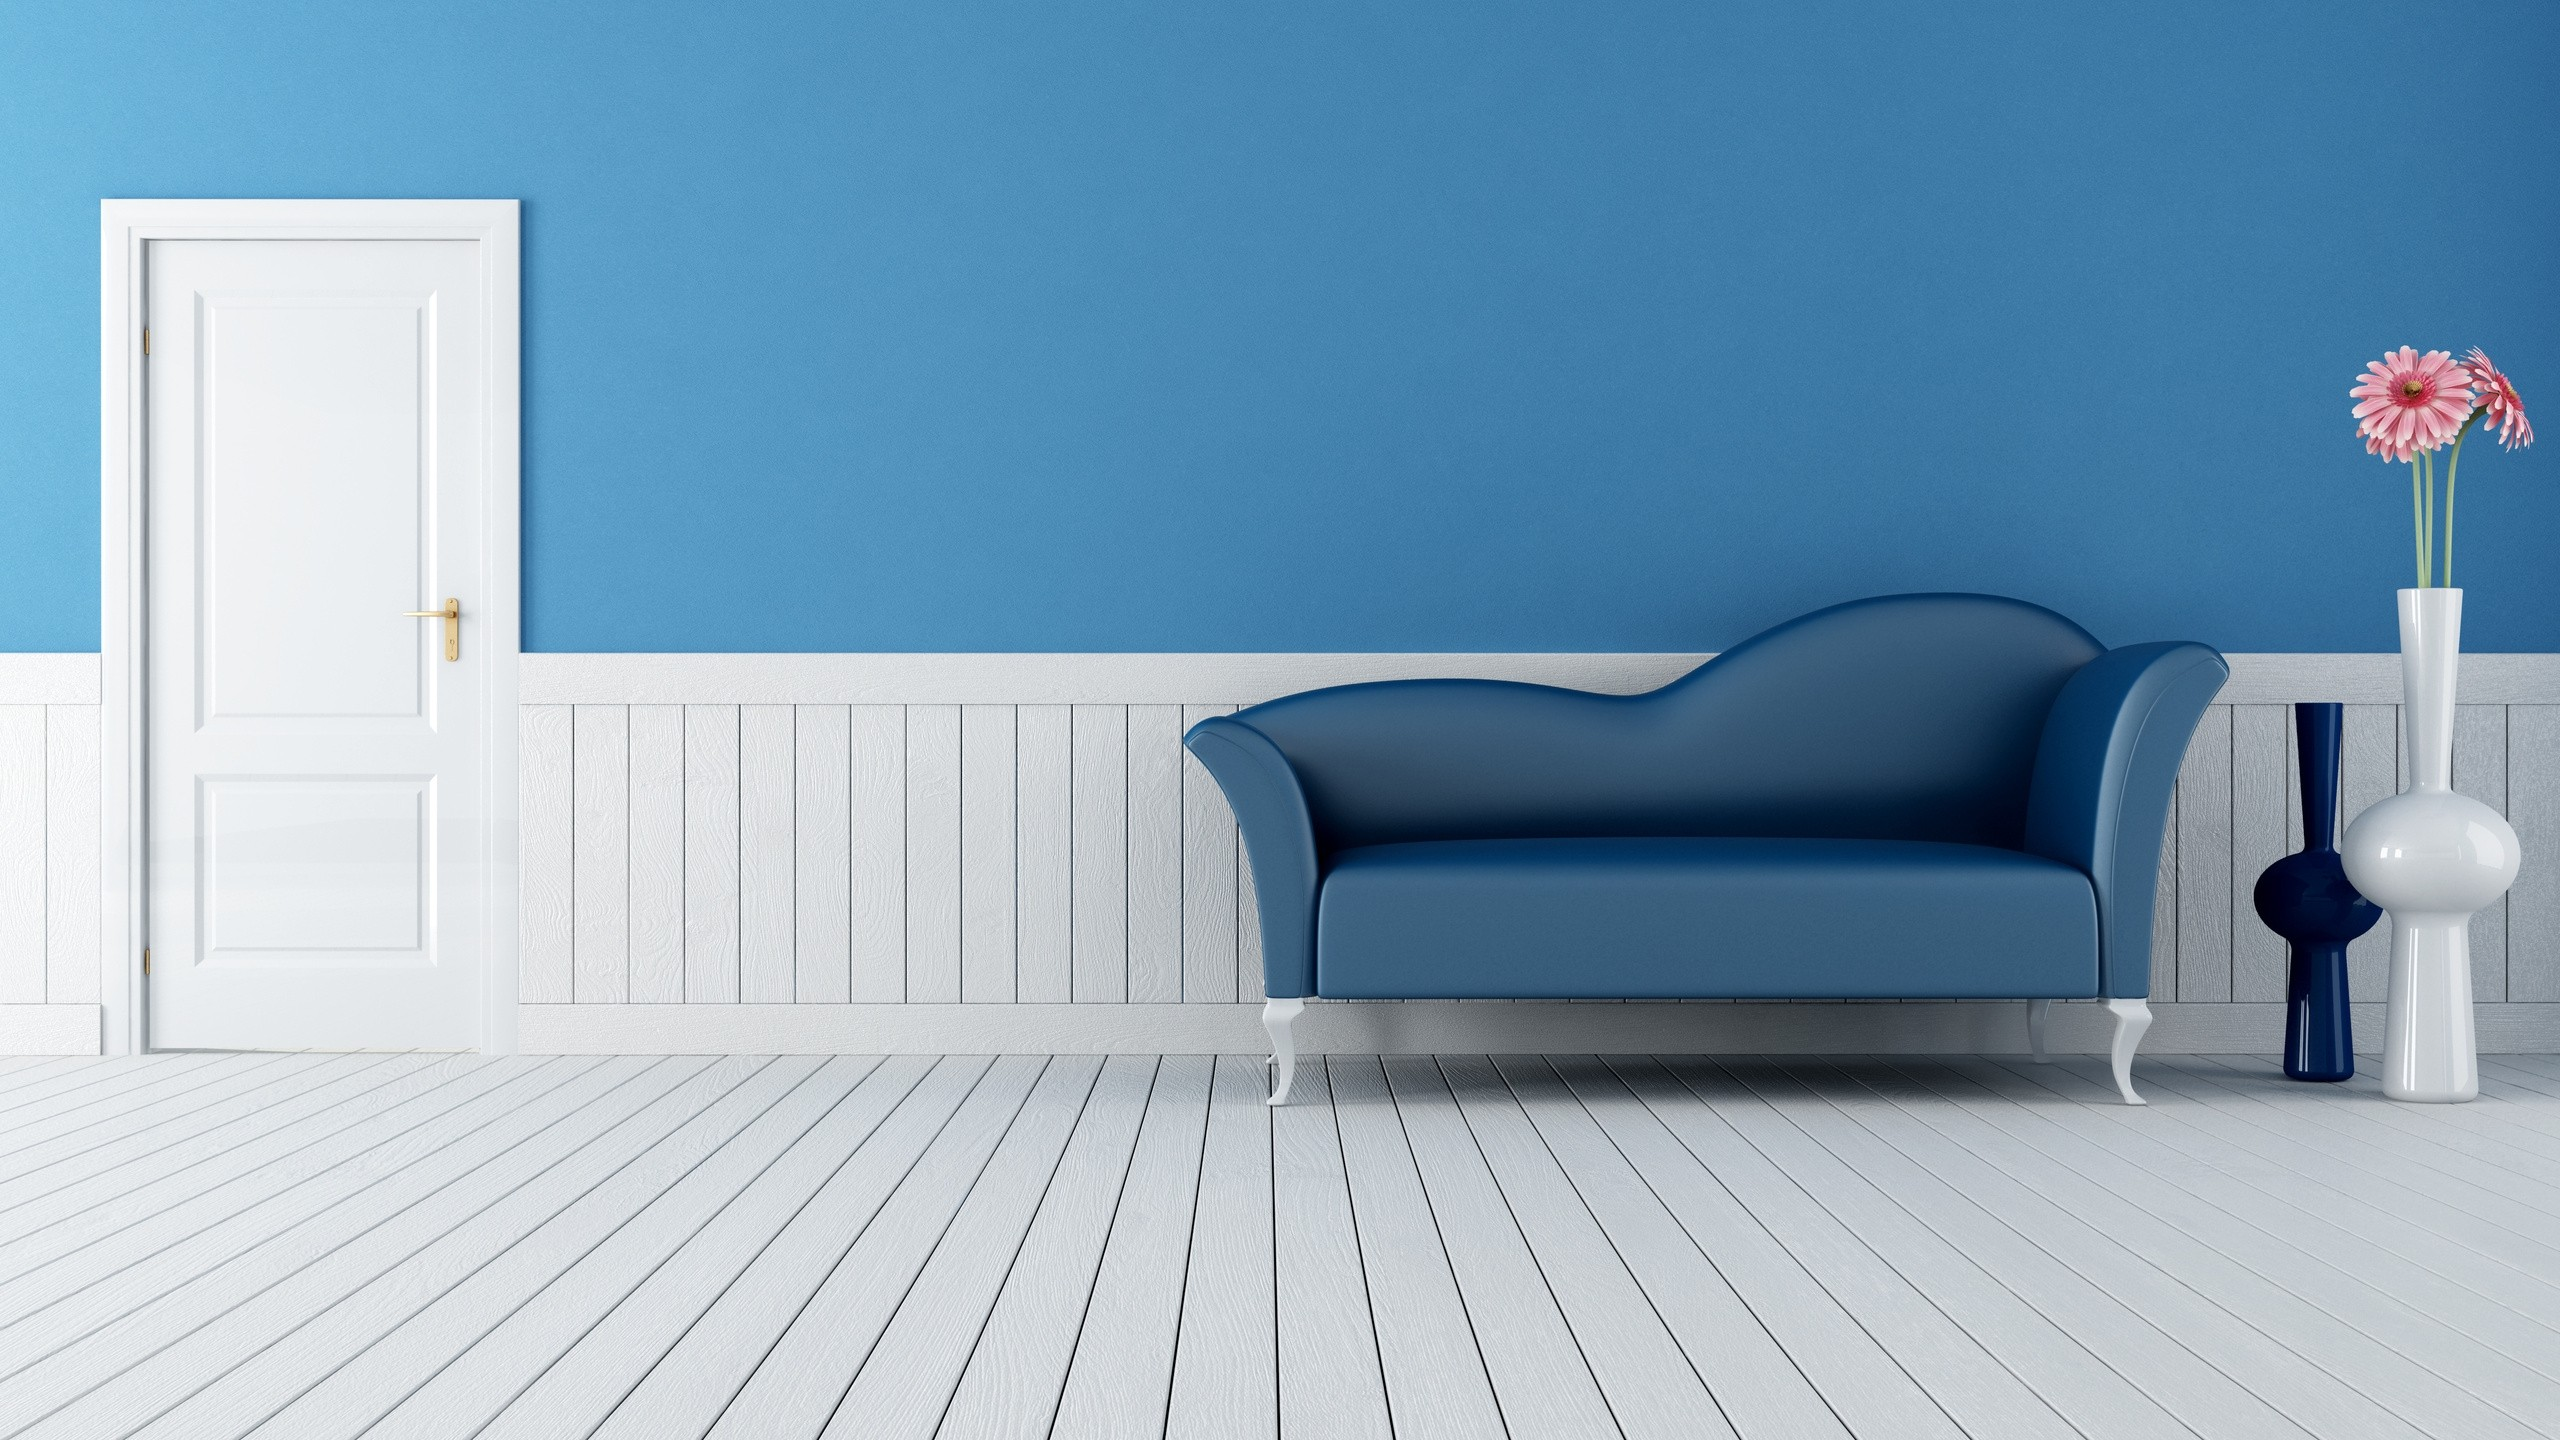 Couch Design Interior Modern Sofa Wallpaper 2560x1440